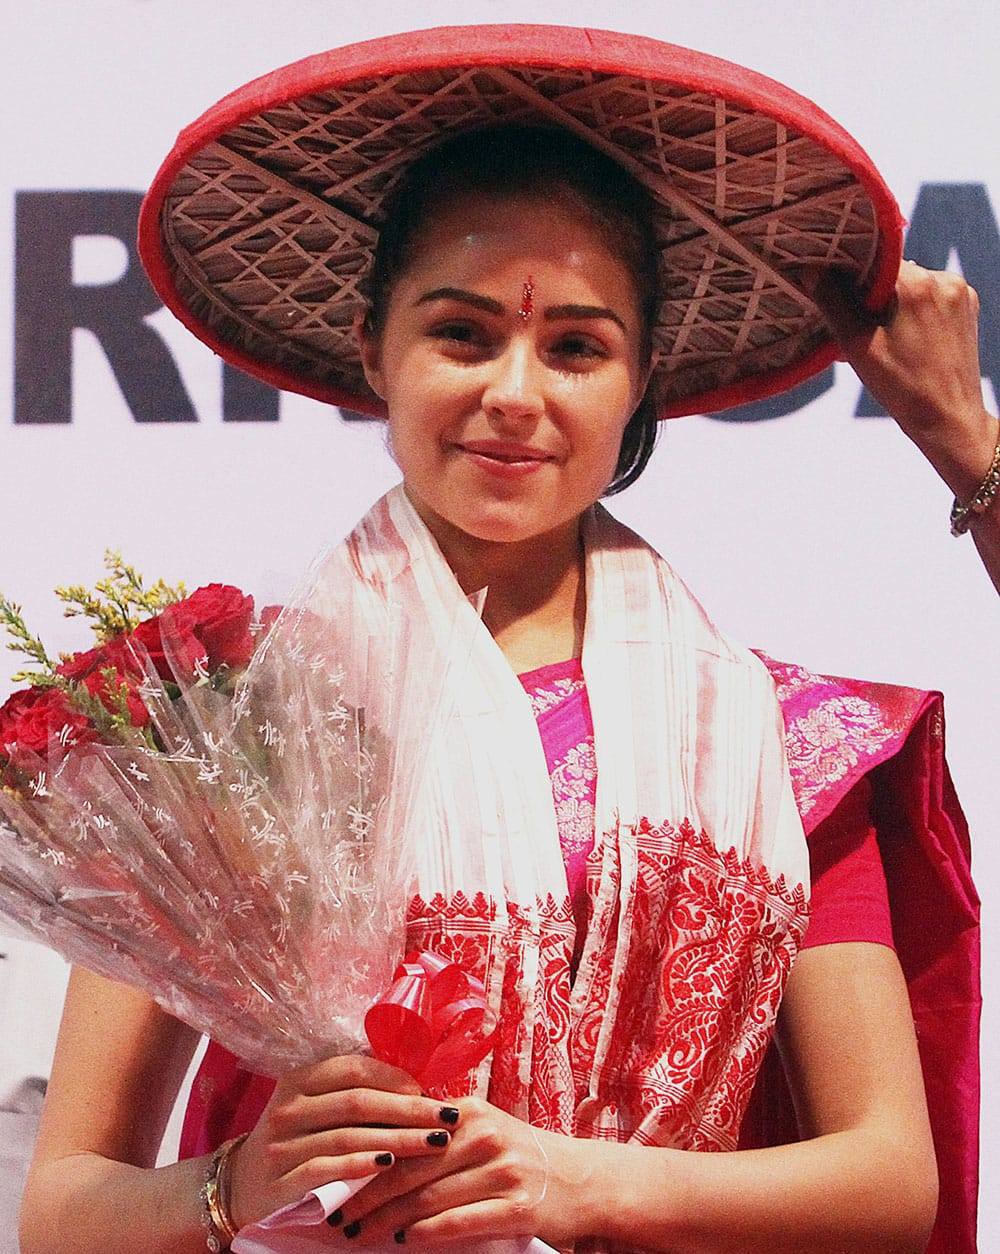 Miss Universe Olivia Culpo wears a traditional Assamese hat called Japi during a campaign